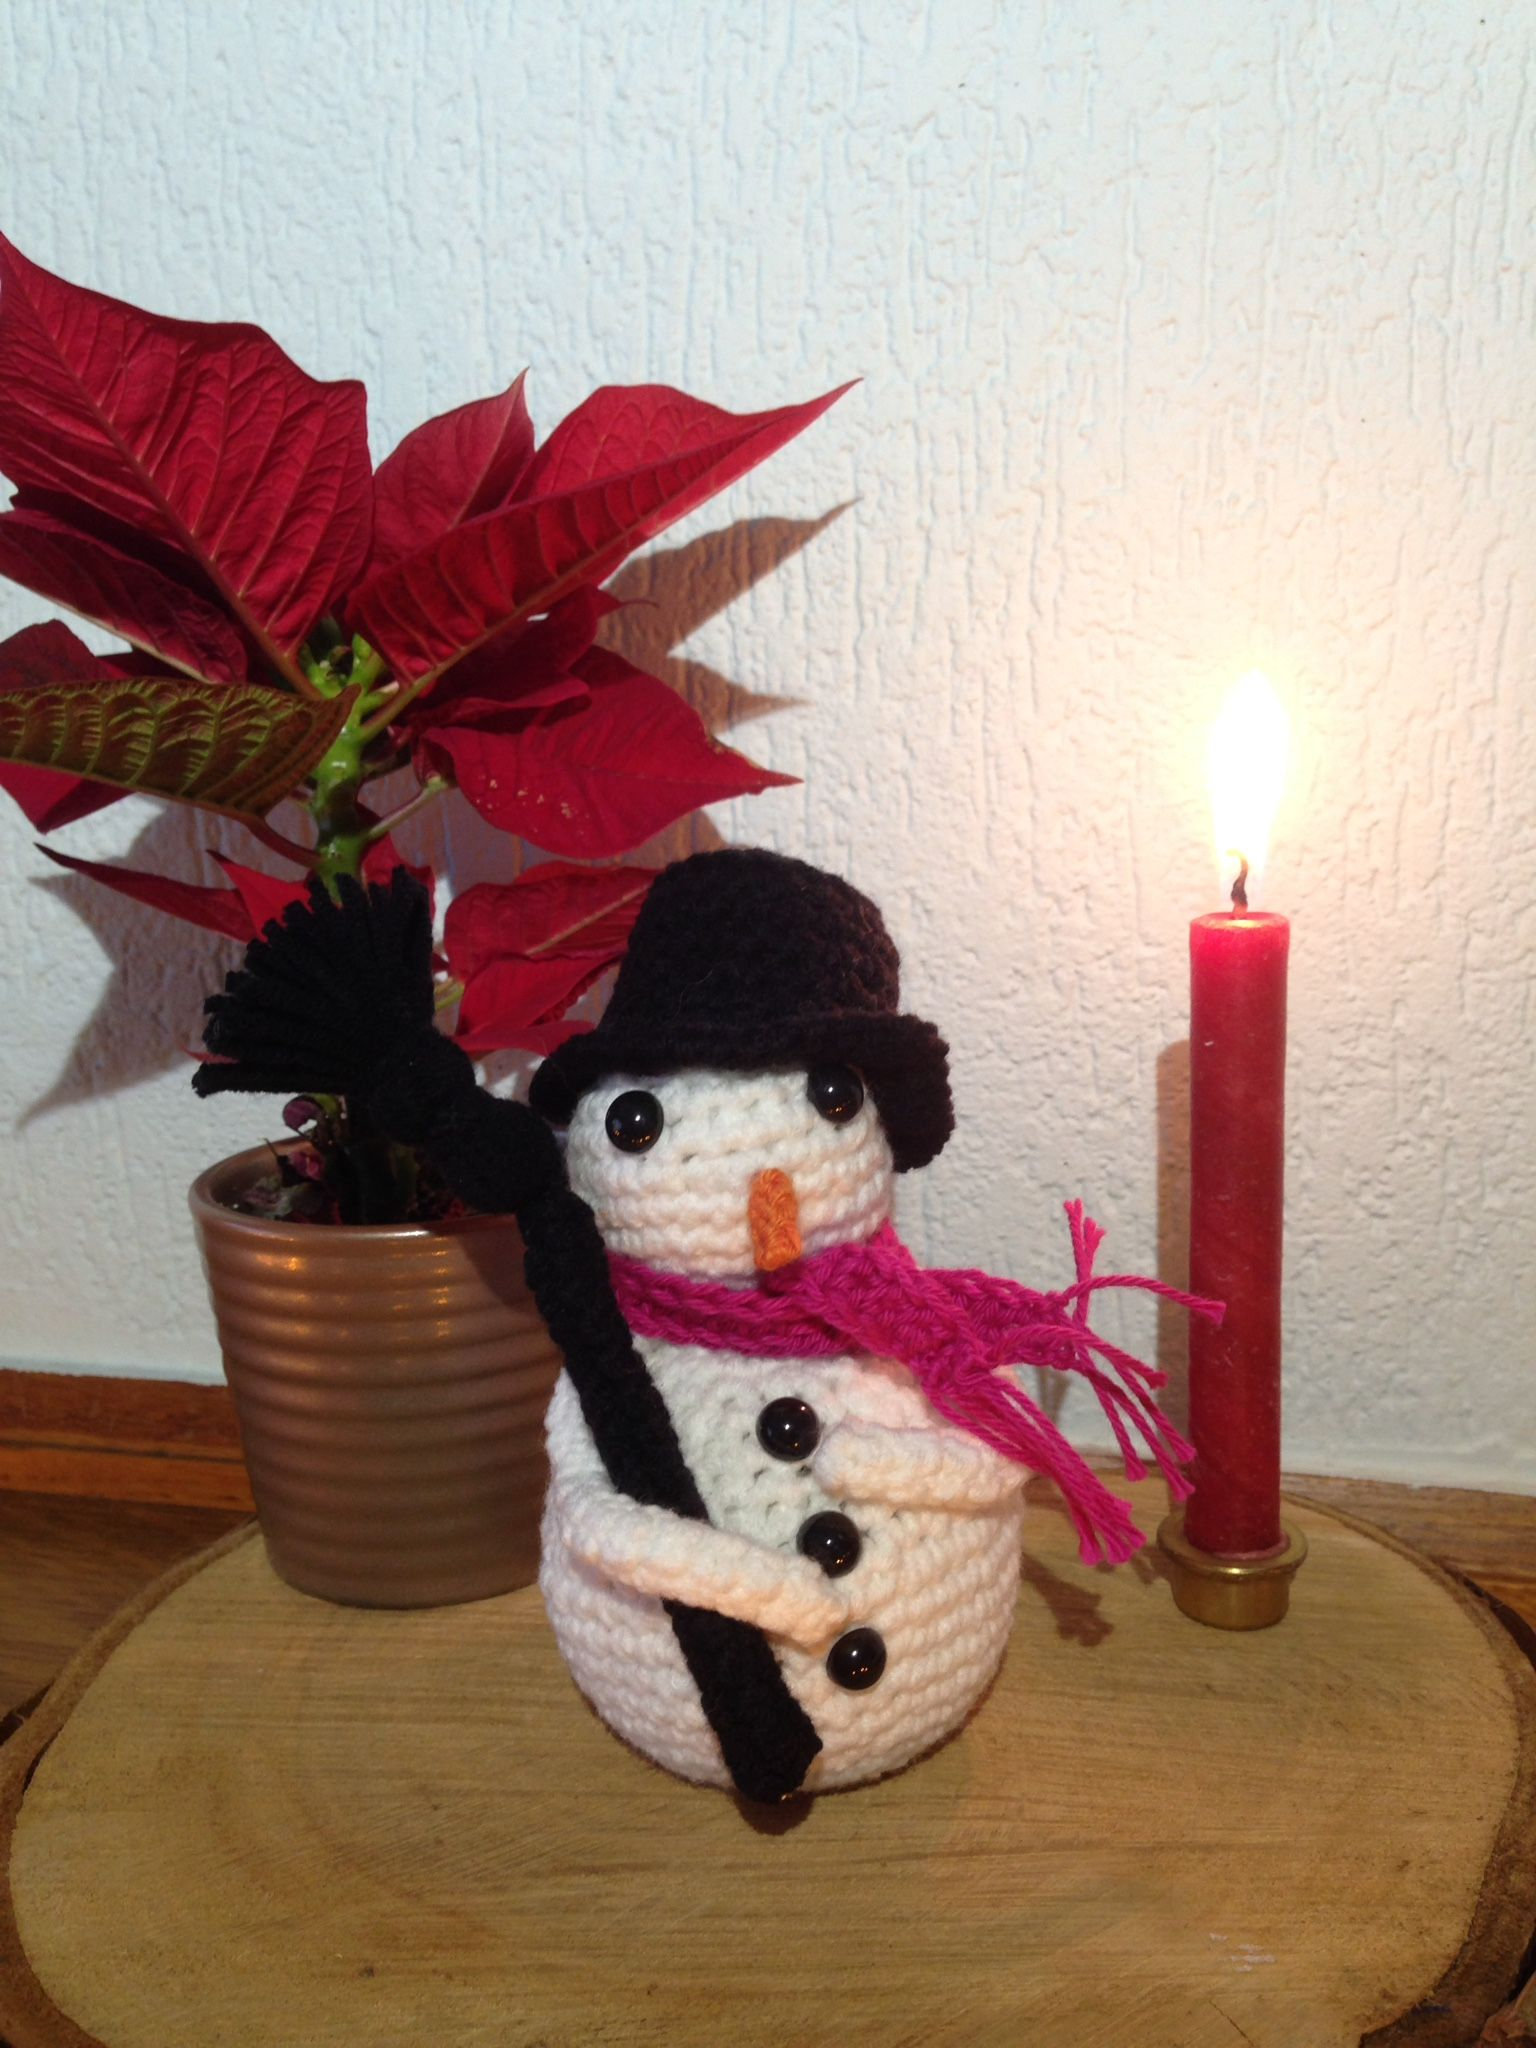 A free crochet pattern for a snowman. The pattern is fully written, very easy to follow and suitable for all skill levels. You can find the pattern here: Snowman.